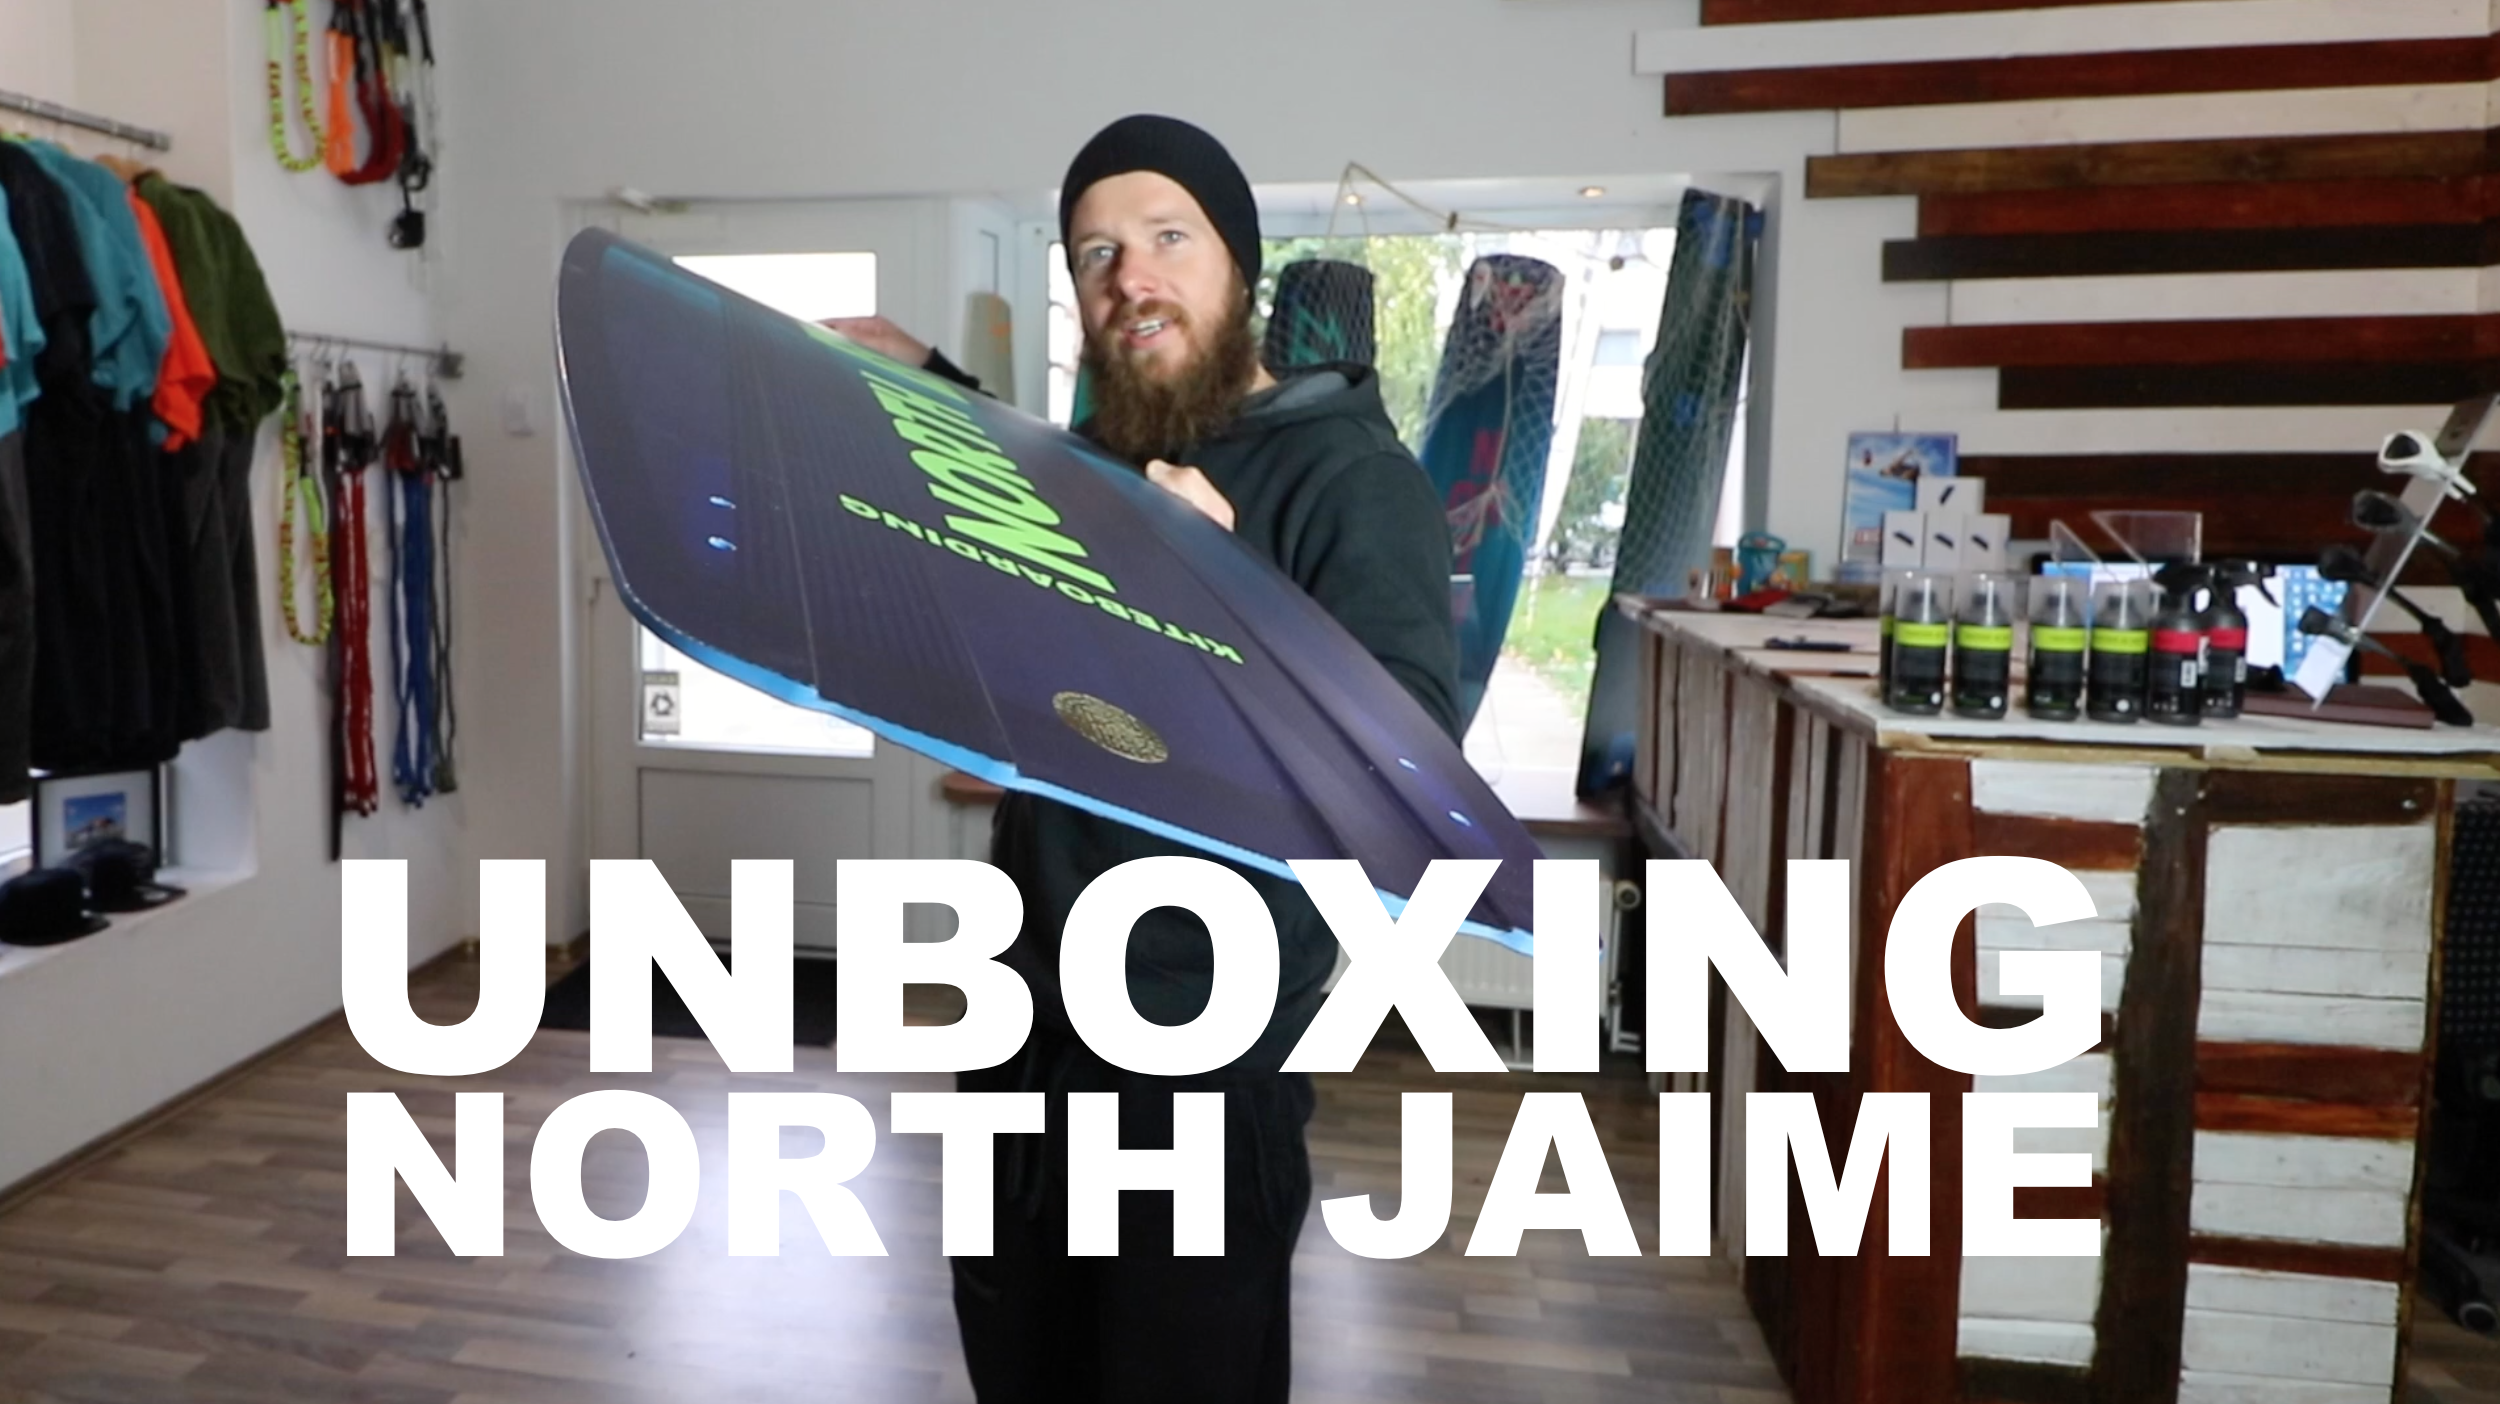 NORTH JAIME UNBOXING